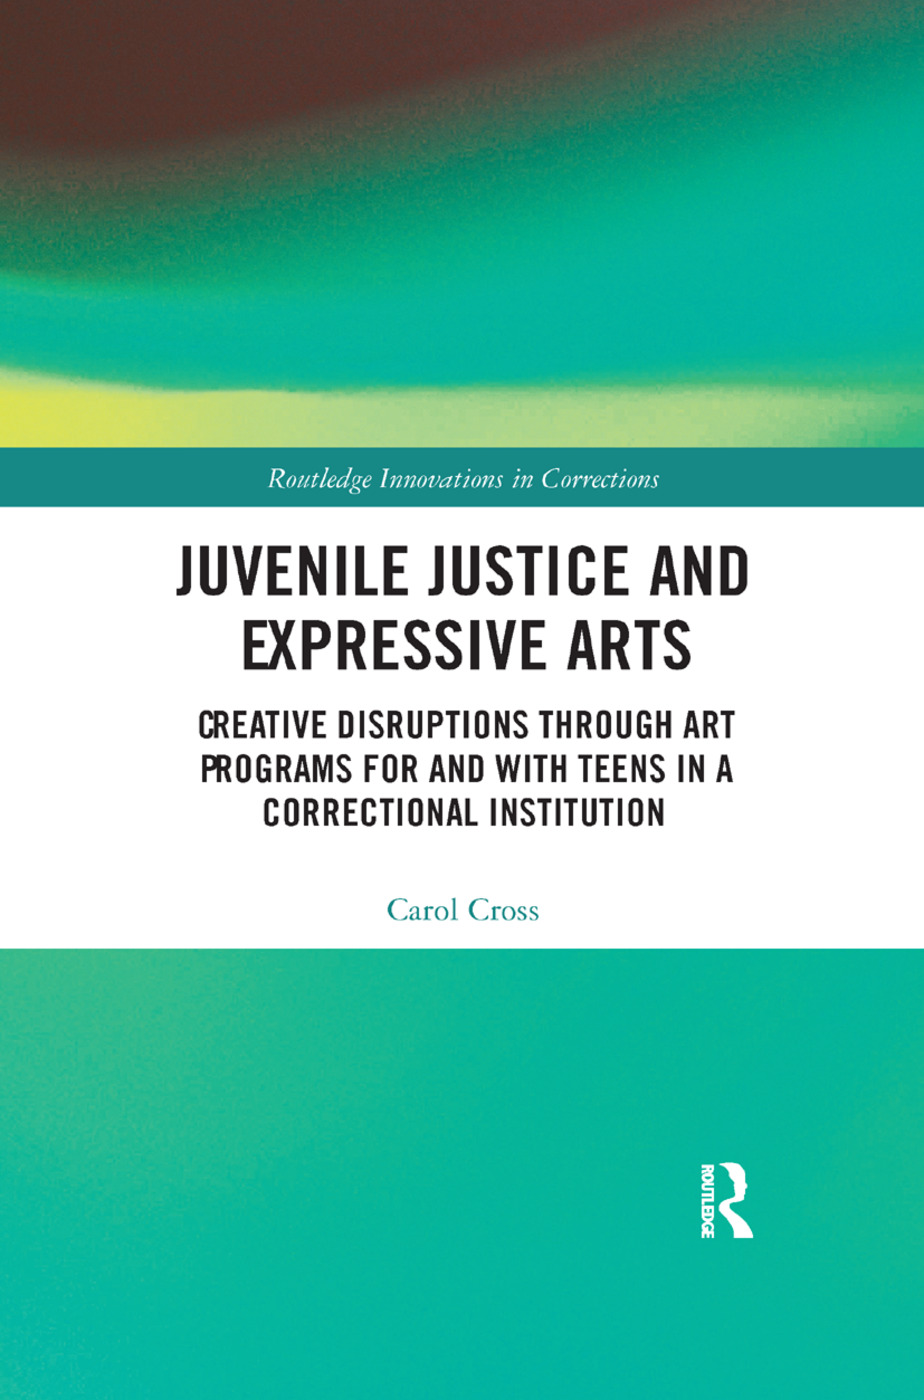 Juvenile Justice and Expressive Arts: Creative Disruptions through Art Programs for and with Teens in a Correctional Institution book cover